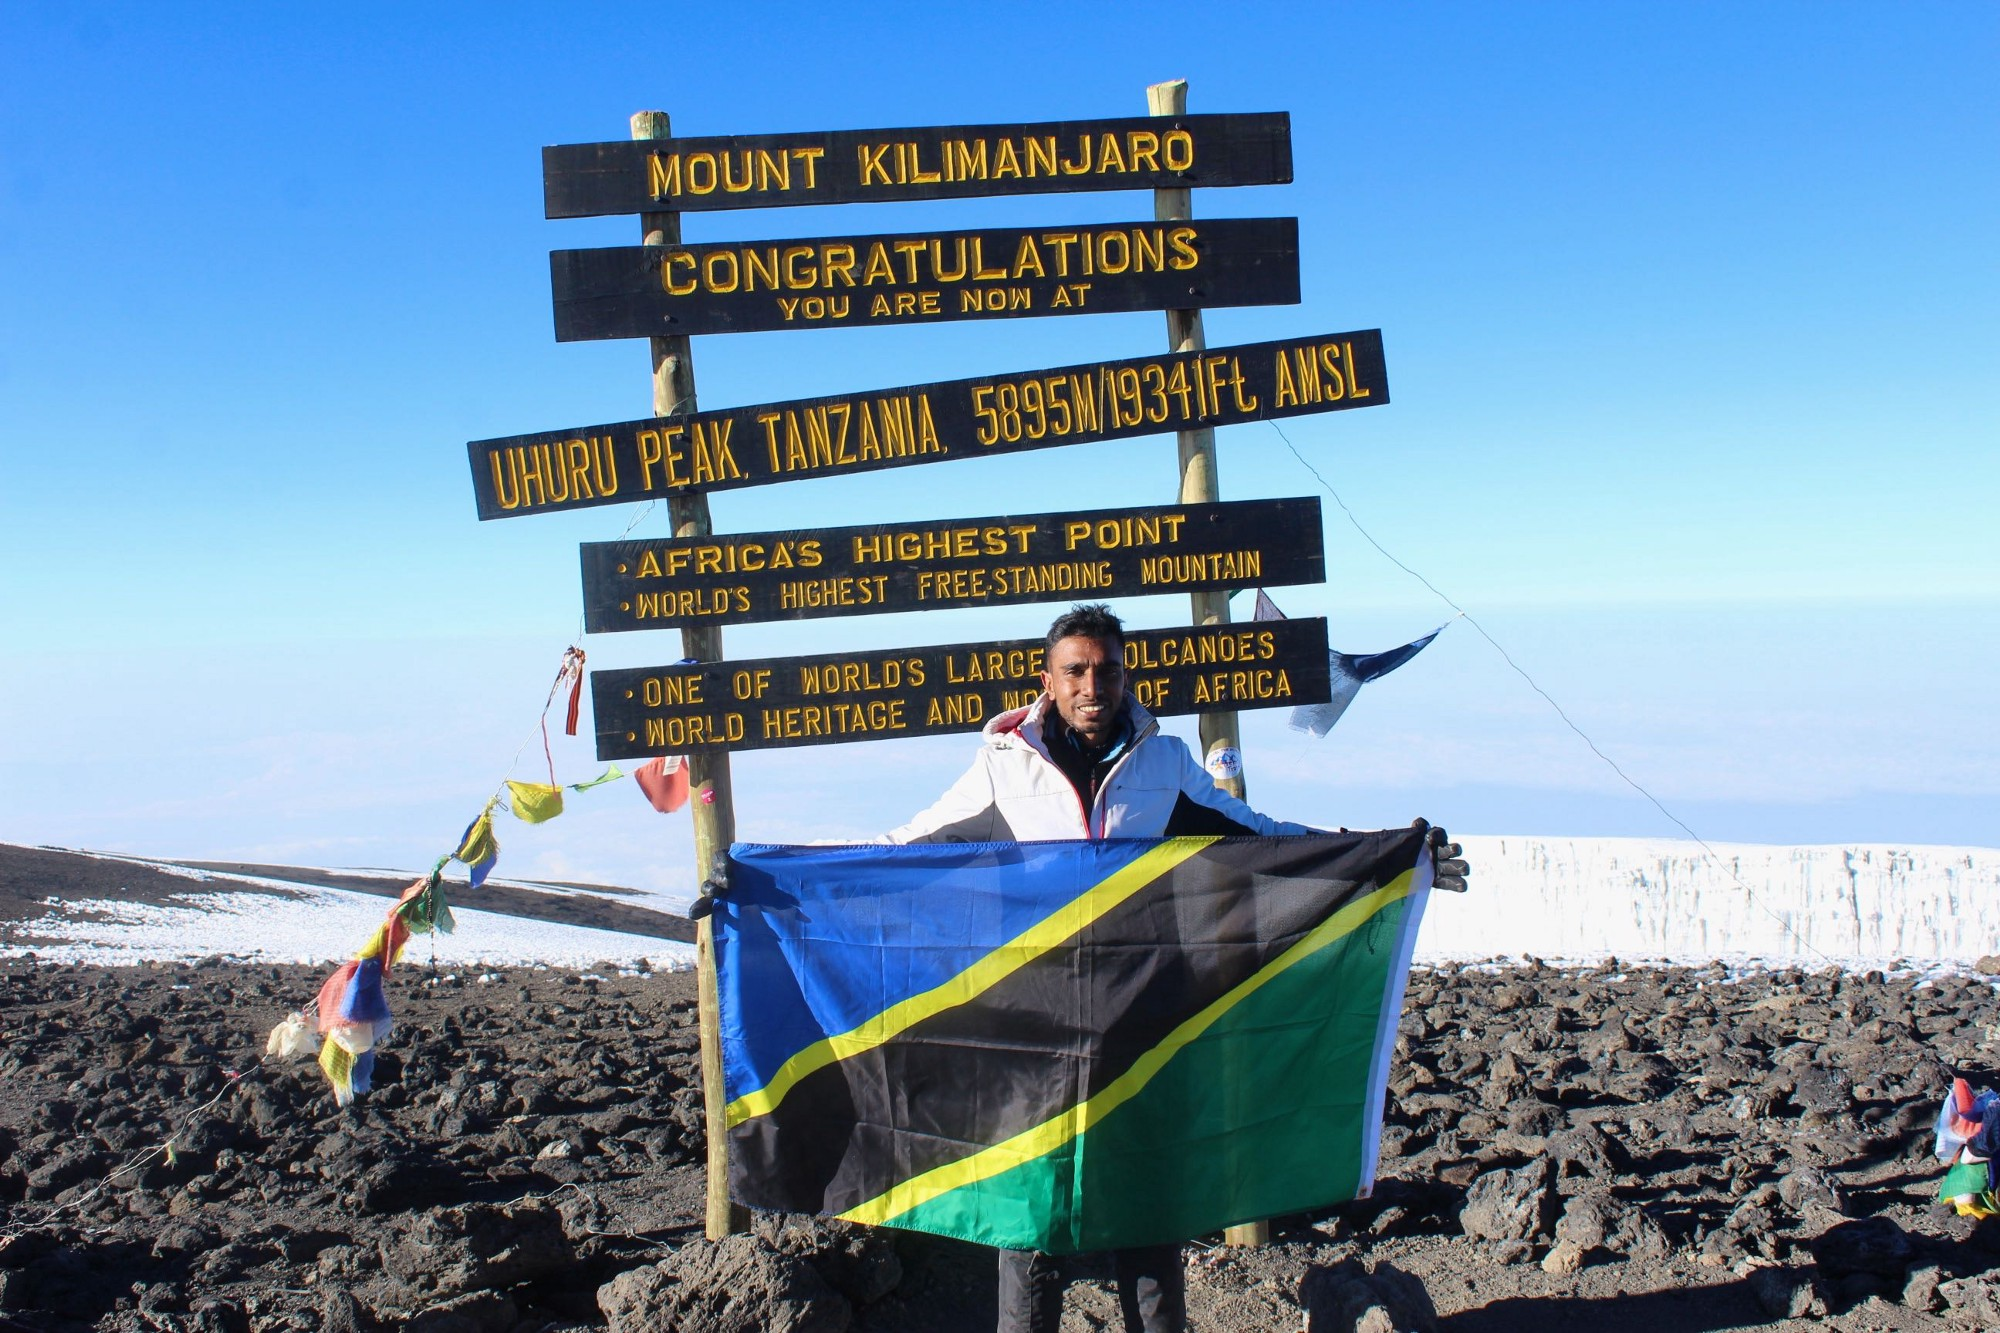 Visa requirements for tanzanian citizens benjamin fernandes medium it was tough it was worth every second roof of africa mount kilimanjaro tanzania july 2015 freerunsca Images